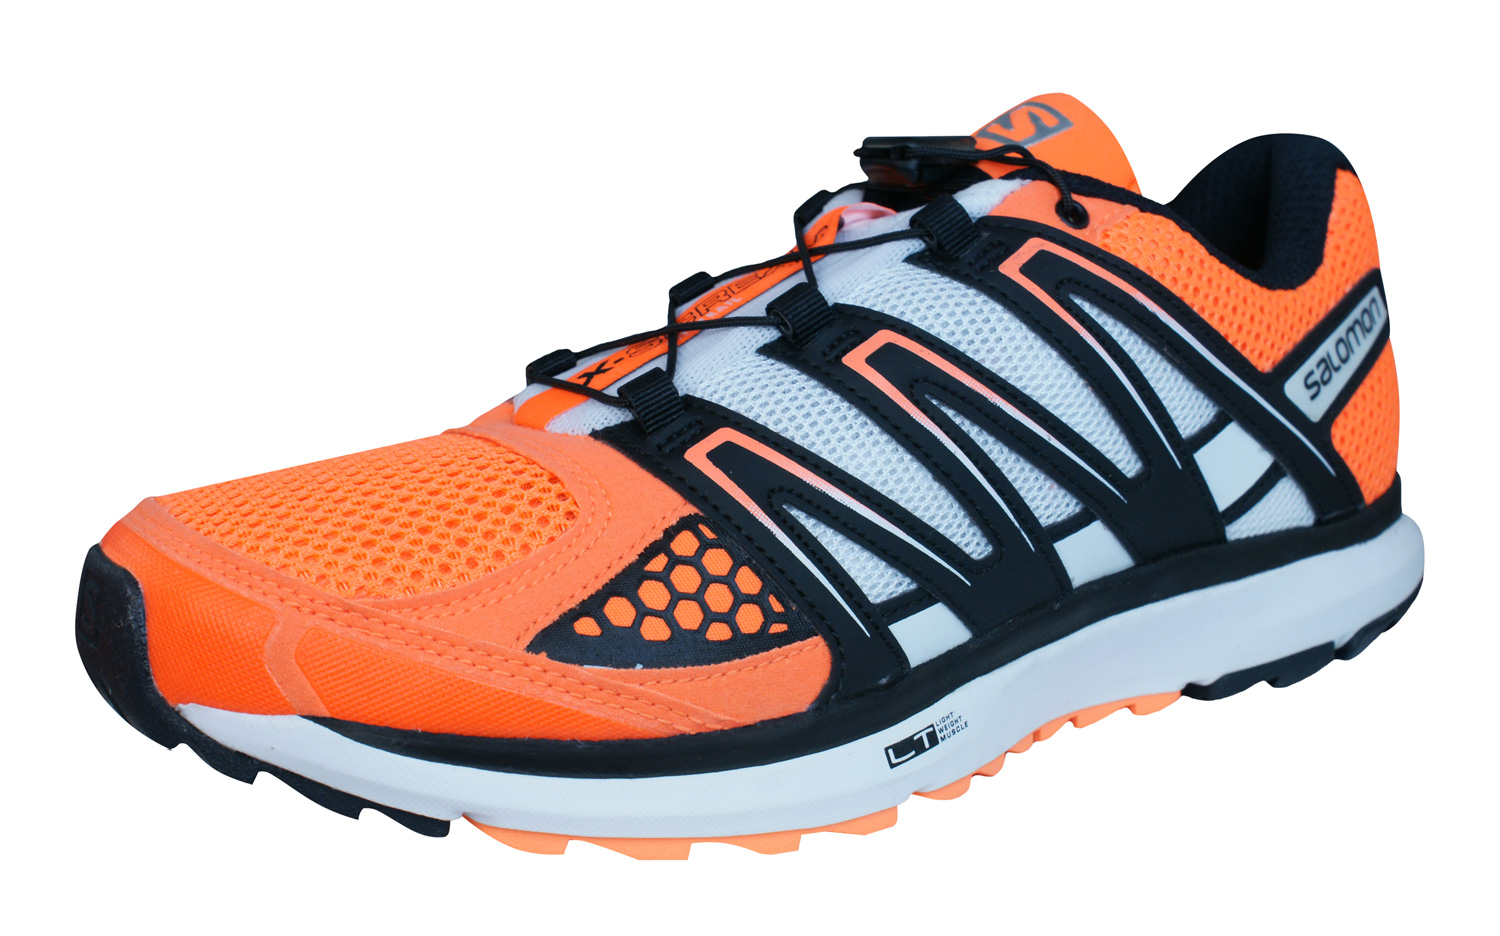 Salomon X Scream Orange Running Shoes